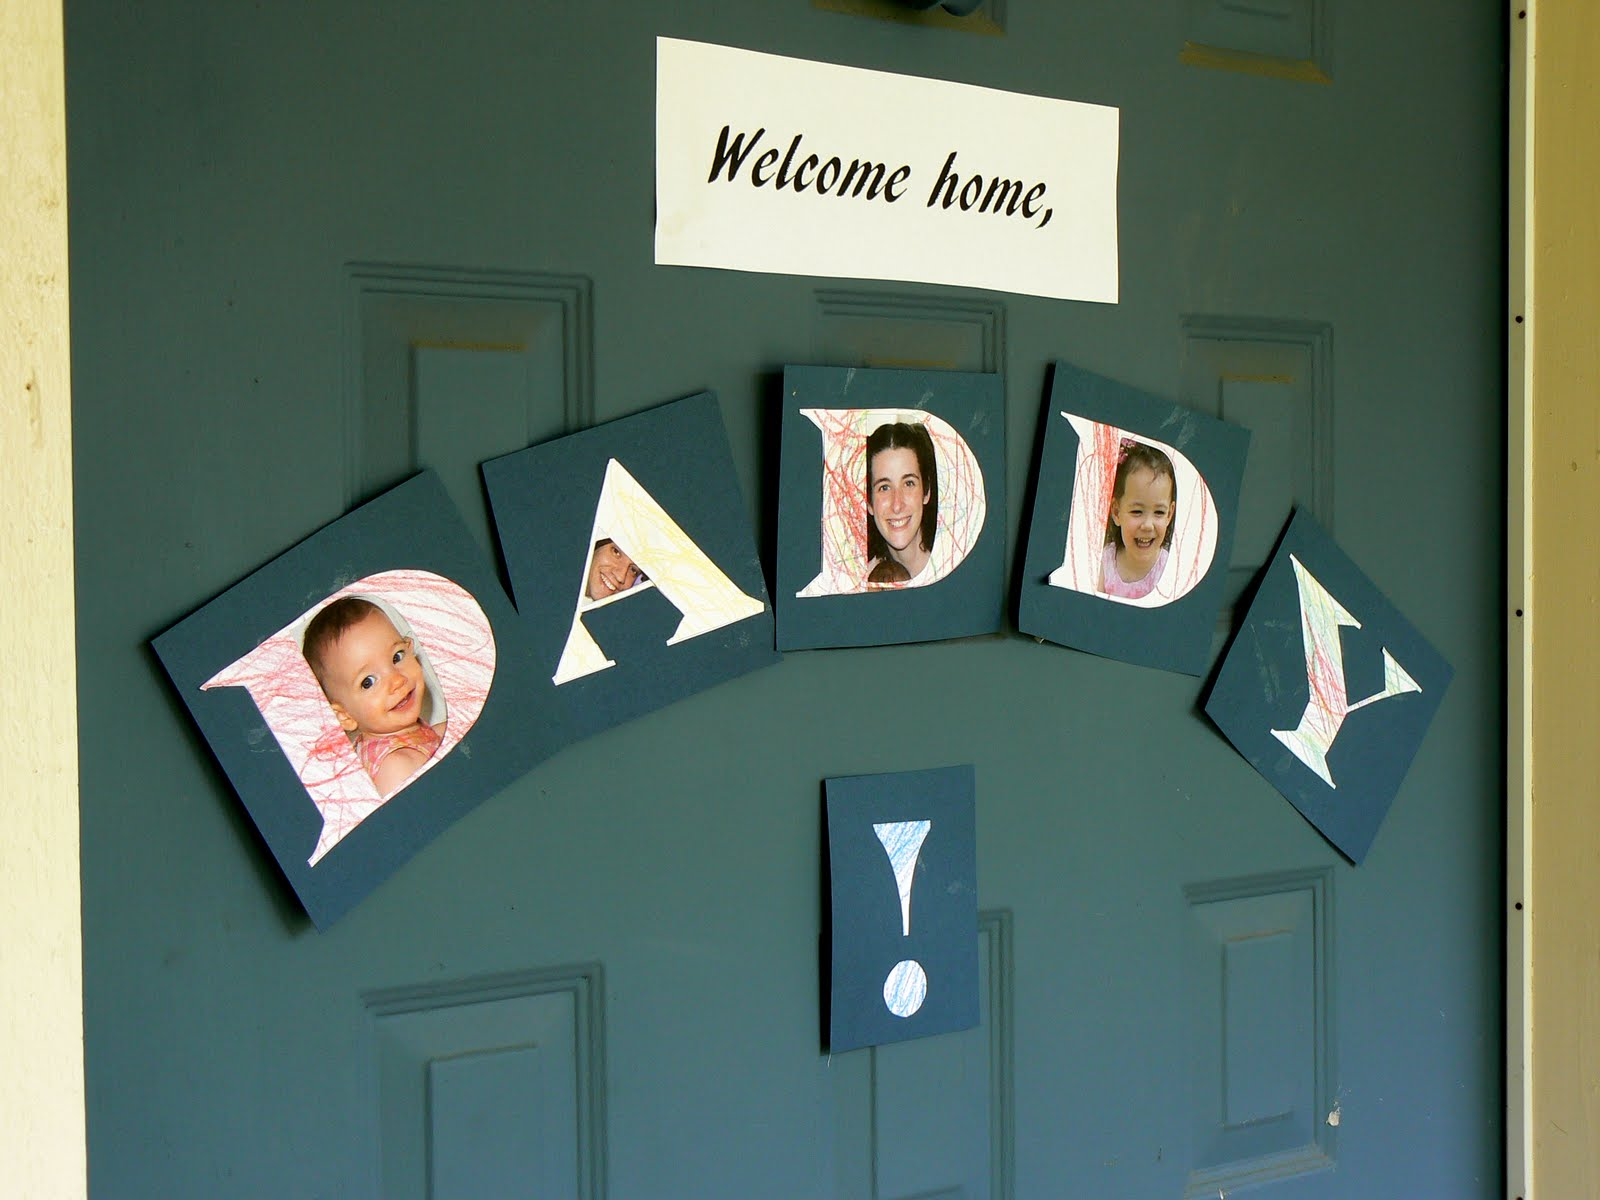 having fun at home welcome home photo sign